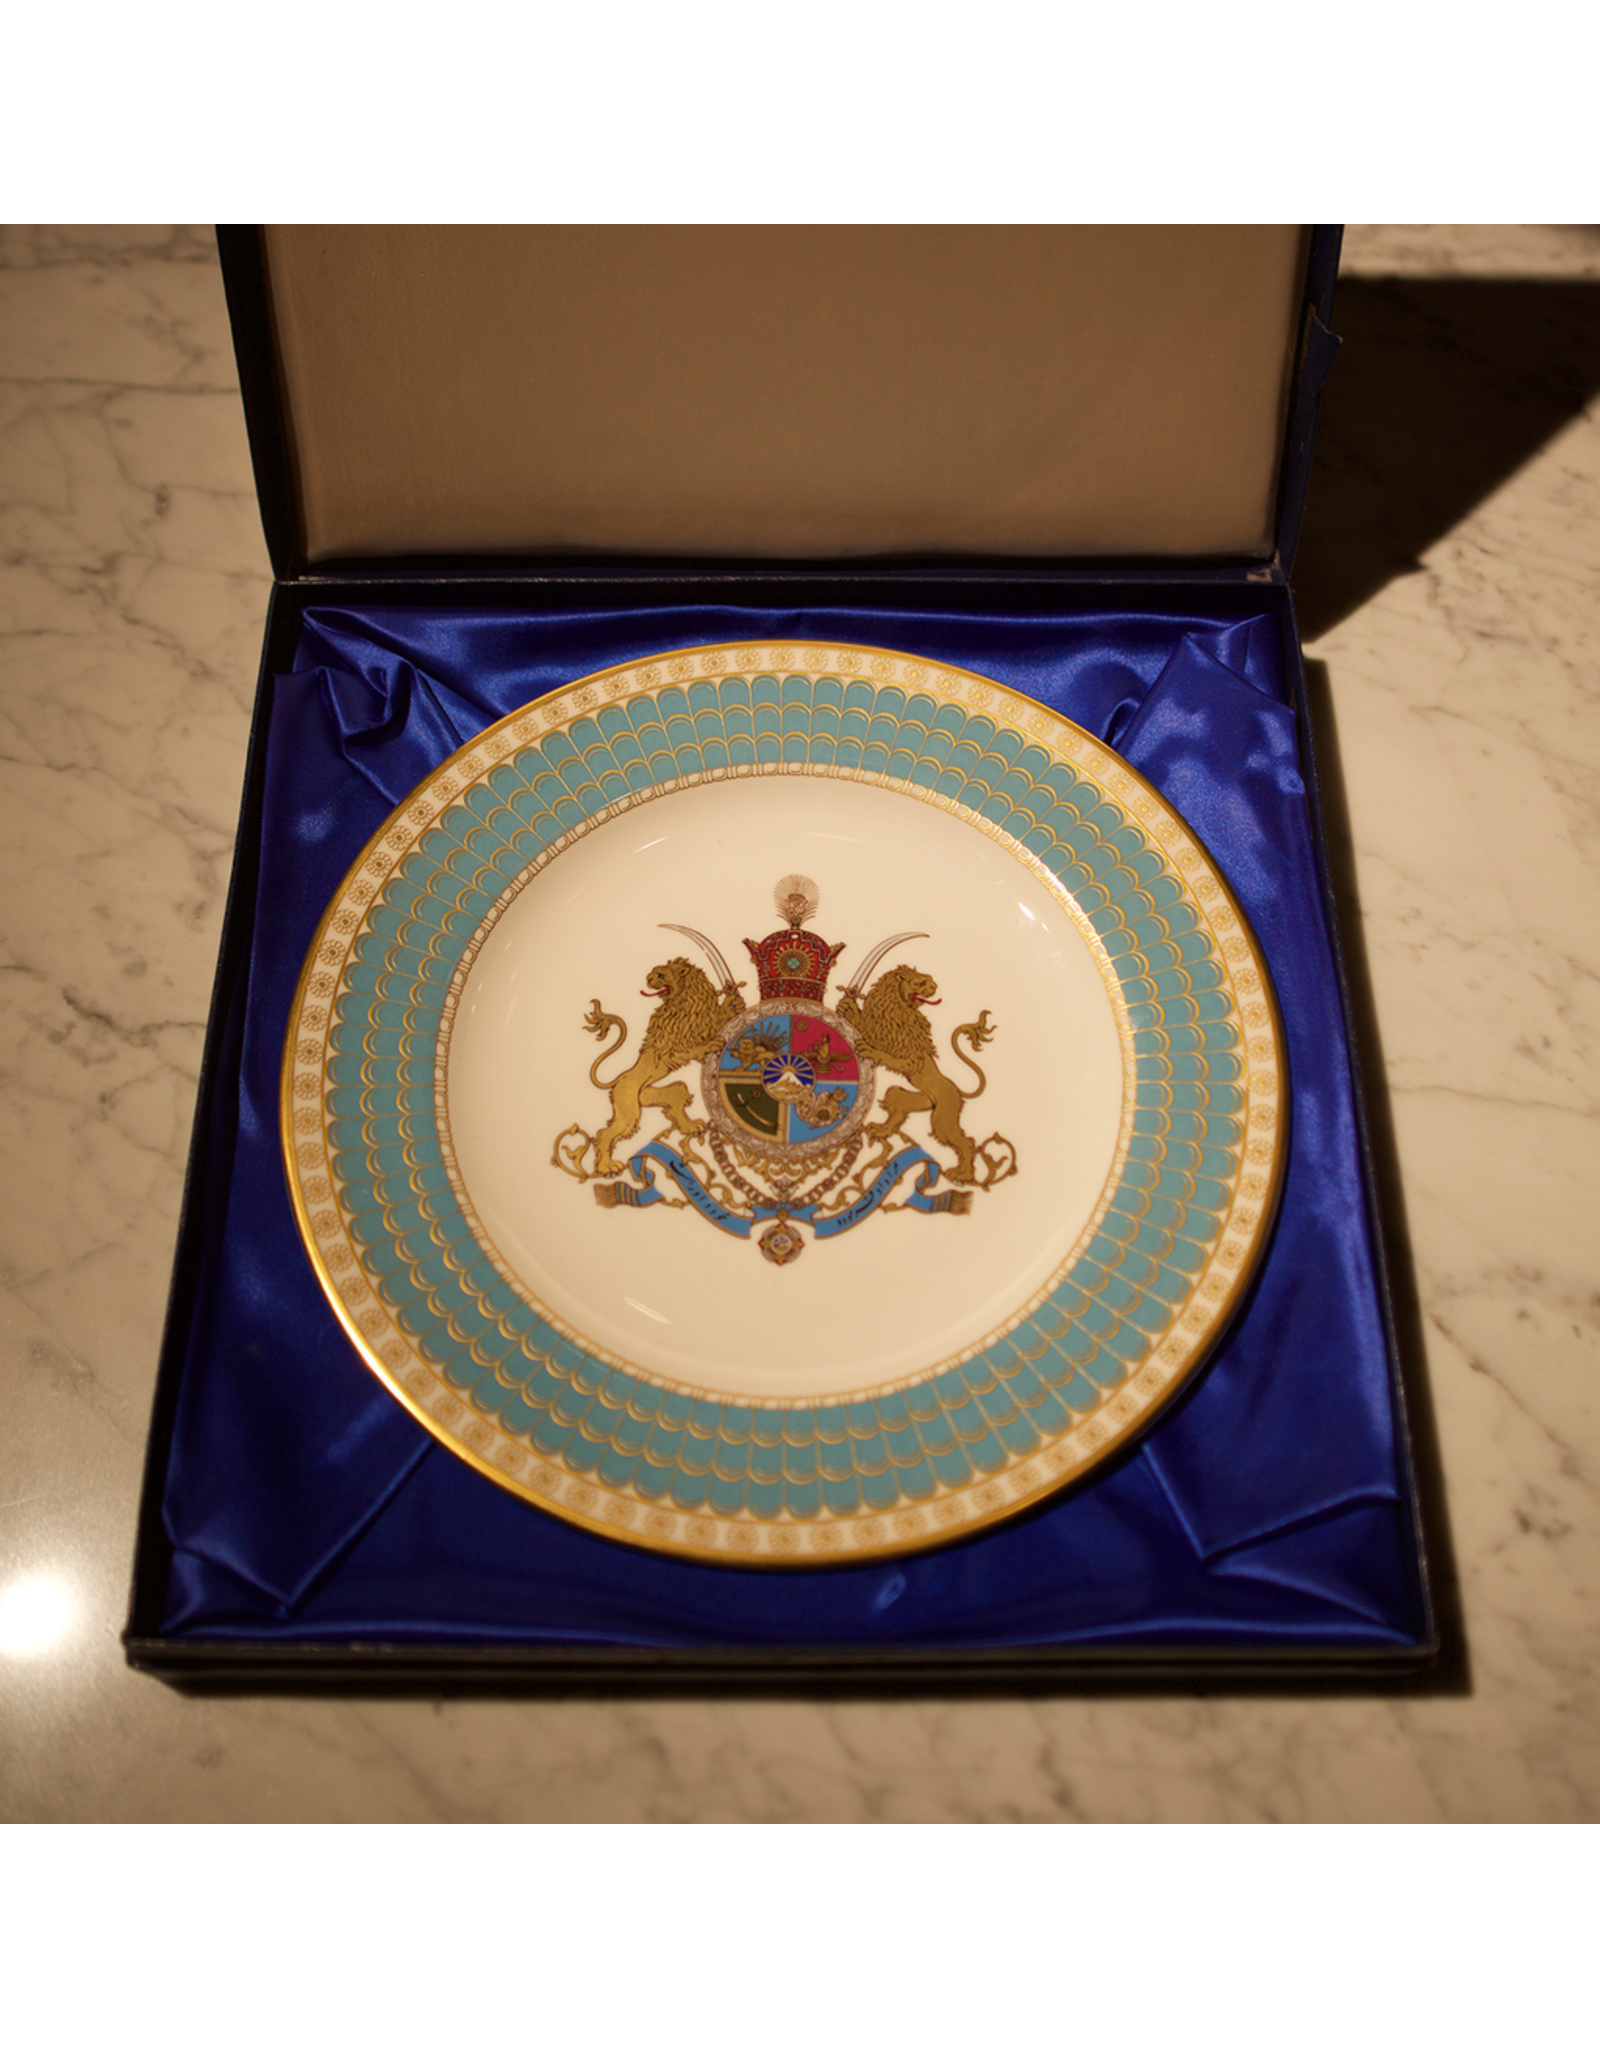 TAJHOME 2,500 year celebration of the Persian Empire Plate